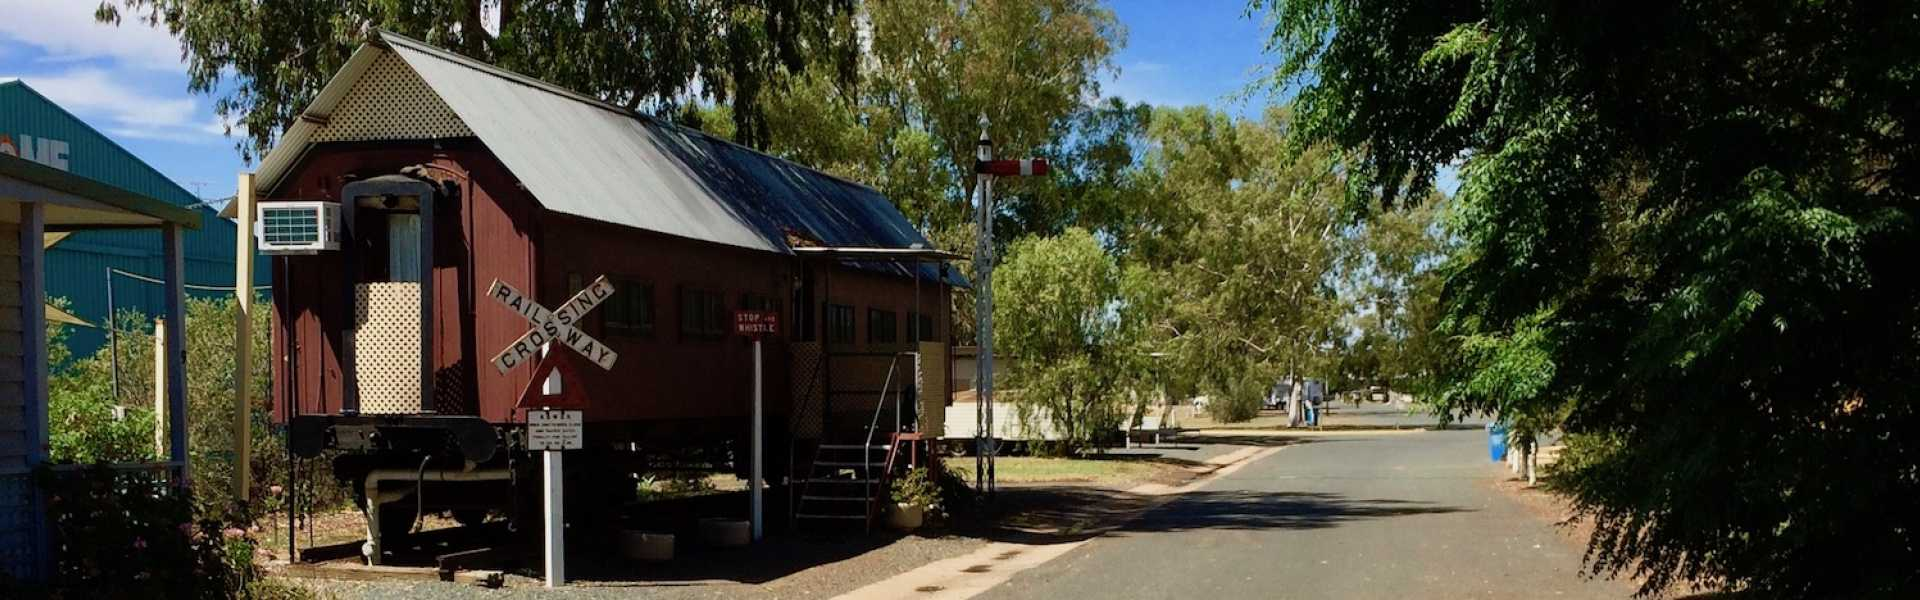 Kui Parks, West Wyalong Caravan Park, Carriage